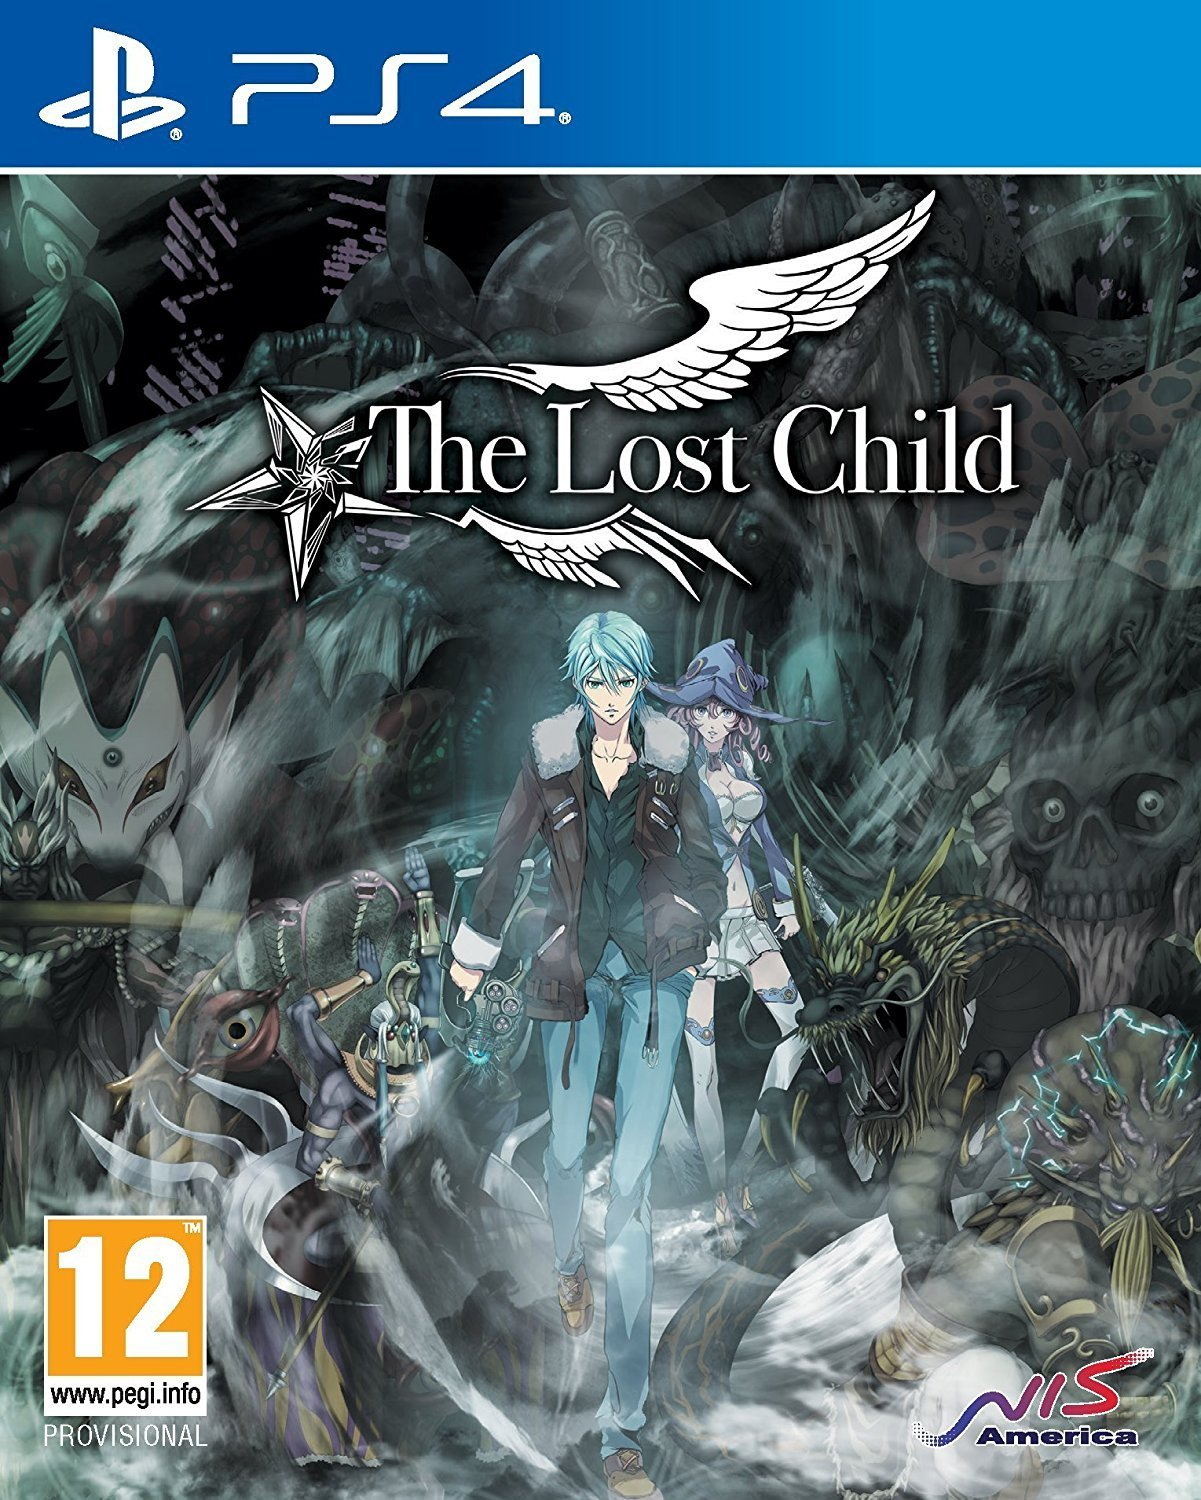 The Lost Child (PS4) imagen